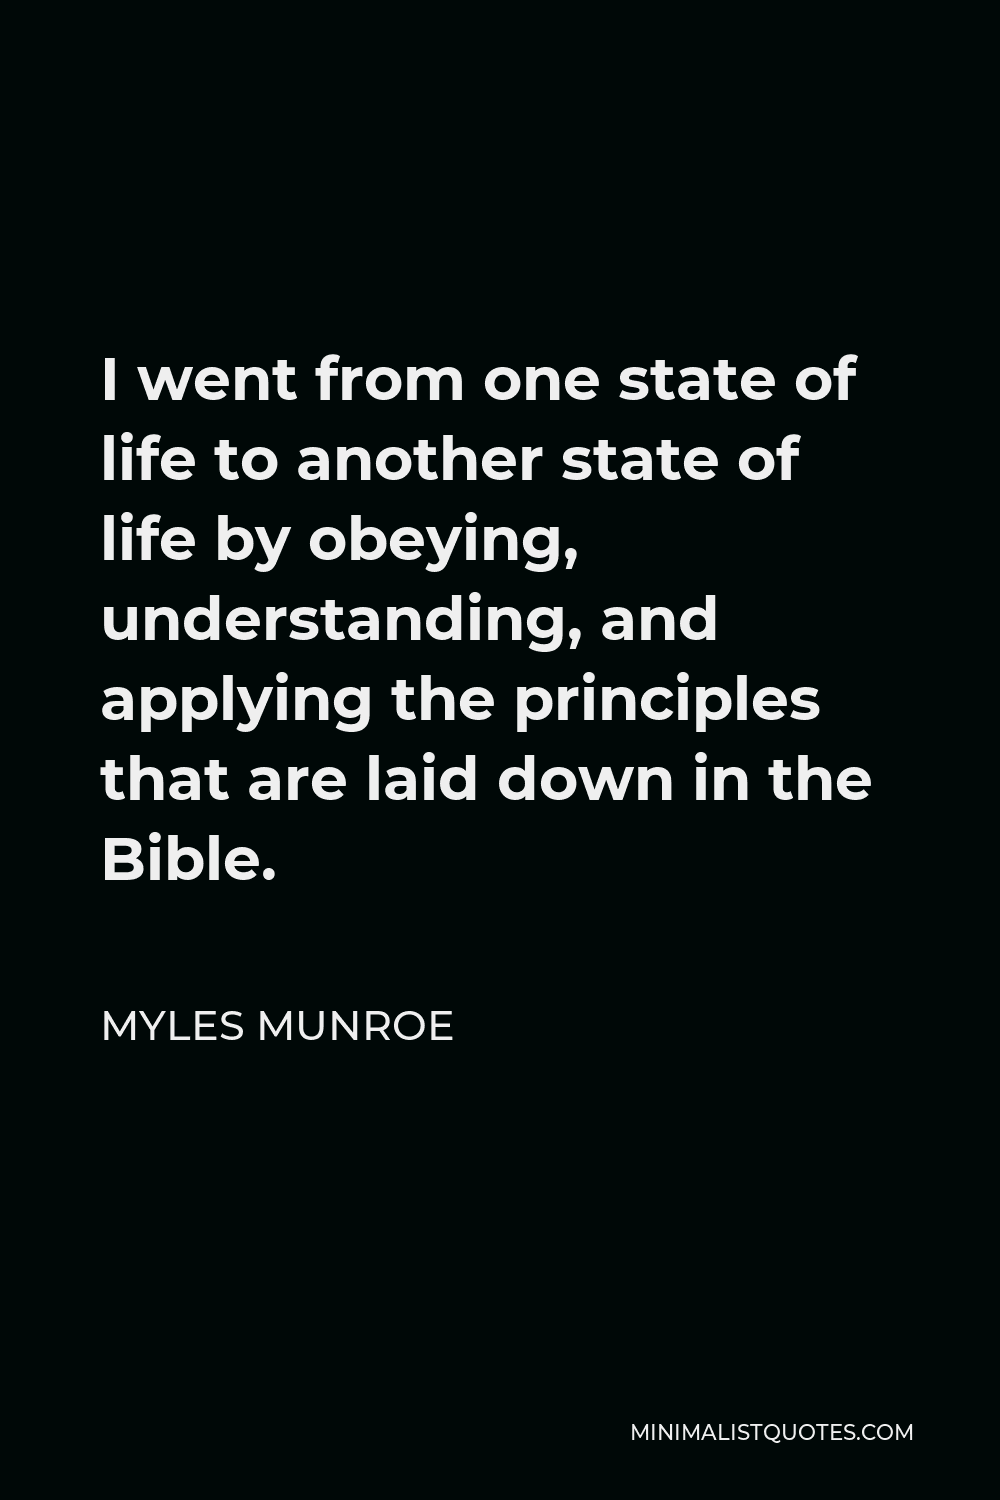 Myles Munroe Quote - I went from one state of life to another state of life by obeying, understanding, and applying the principles that are laid down in the Bible.